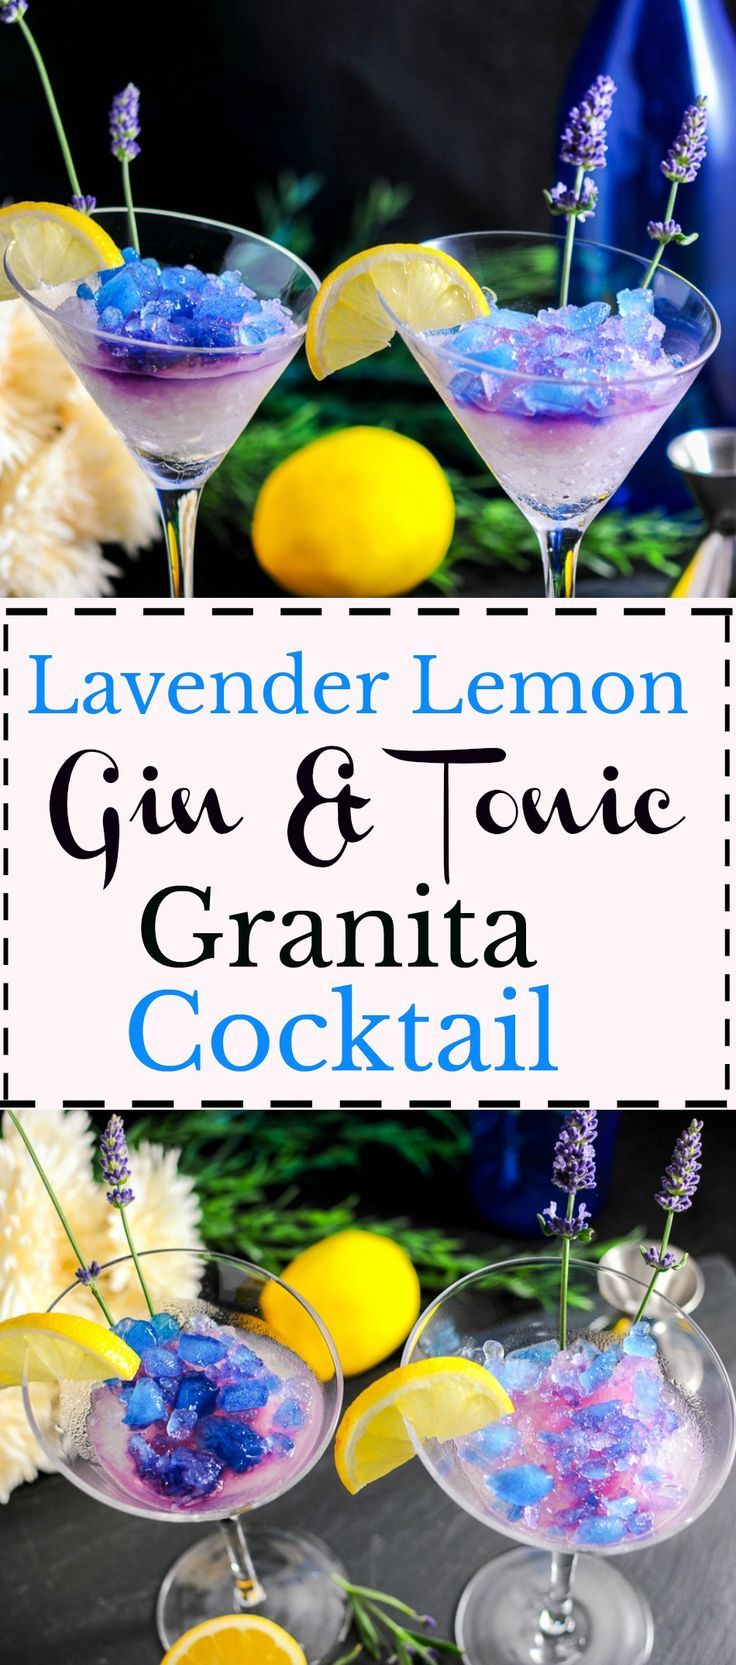 49+ Craft cocktail recipes gin ideas